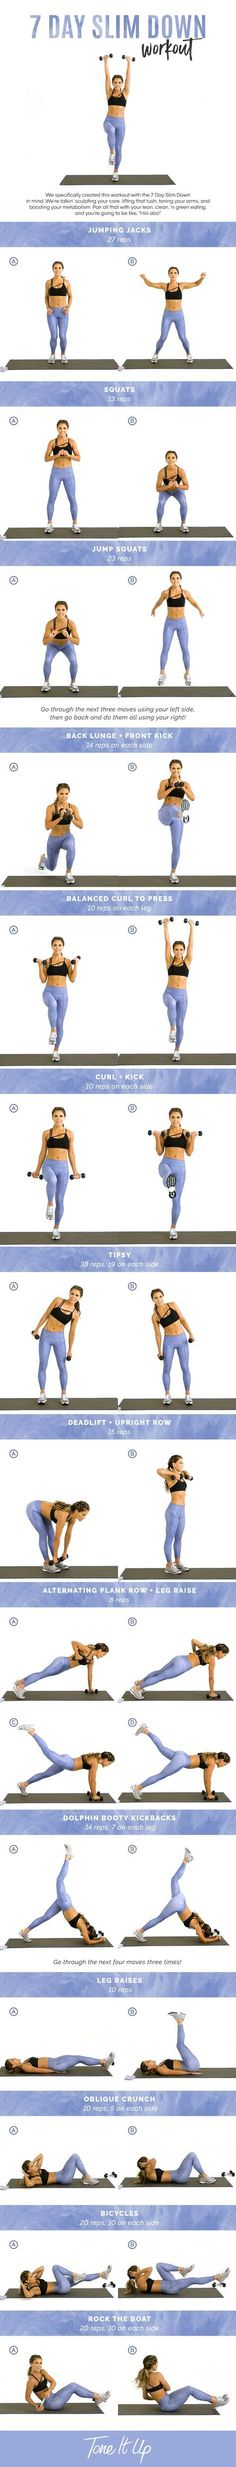 Tone It Up 7 Day Slim Down Workout!